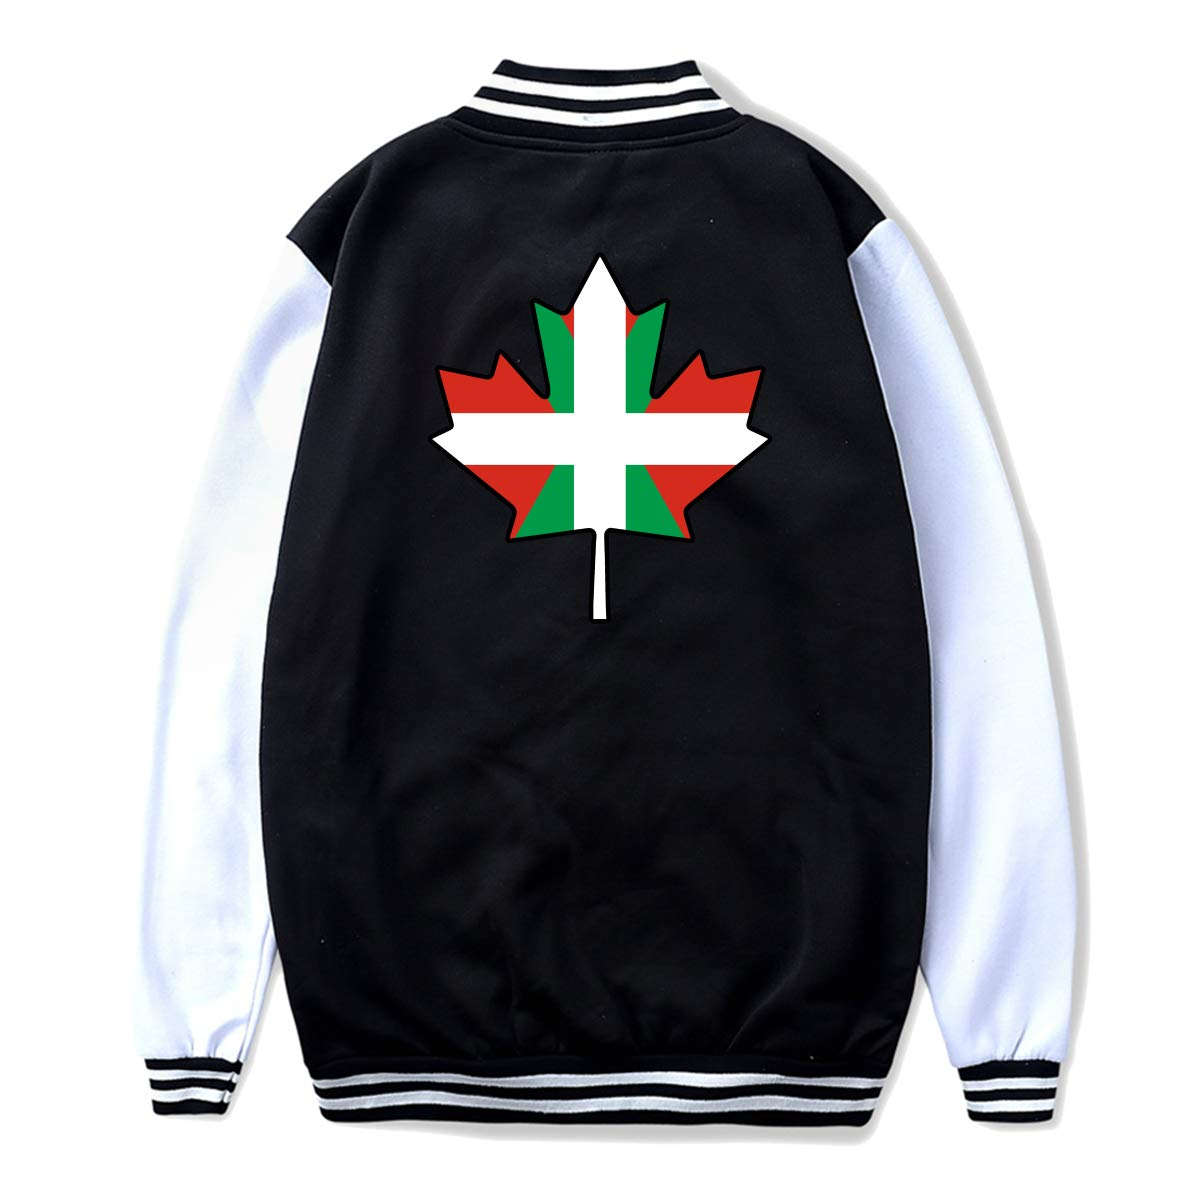 Unisex Youth Baseball Uniform Jacket Basque Flag Canada Maple Leaf Hoodie Coat Sweater Sweatshirt Back Print